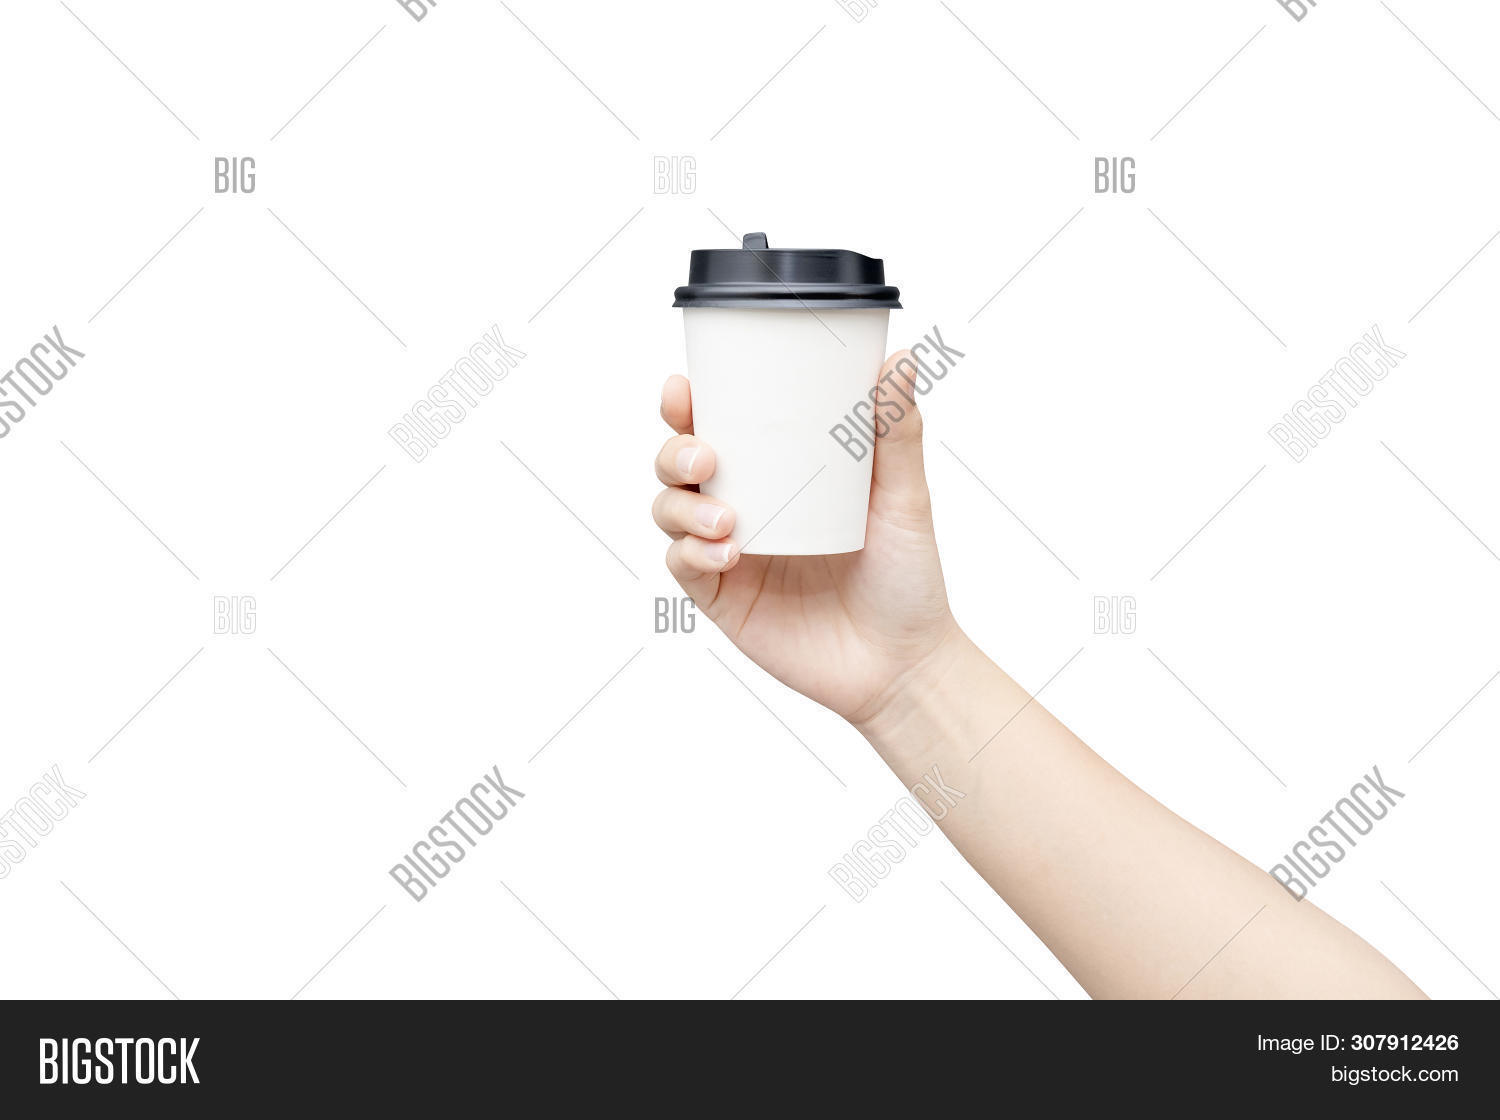 adult,arm,away,background,beverage,blank,bottle,branding,breakfast,bubble,cafe,caffeine,cappuccino,closeup,coffee,container,cup,drink,empty,espresso,female,finger,food,hand,handle,hold,hot,isolated,latte,lid,liquid,male,mocha,mock,mock-up,mockup,morning,mug,nobody,object,paper,people,person,refreshment,take,takeaway,tea,up,white,woman